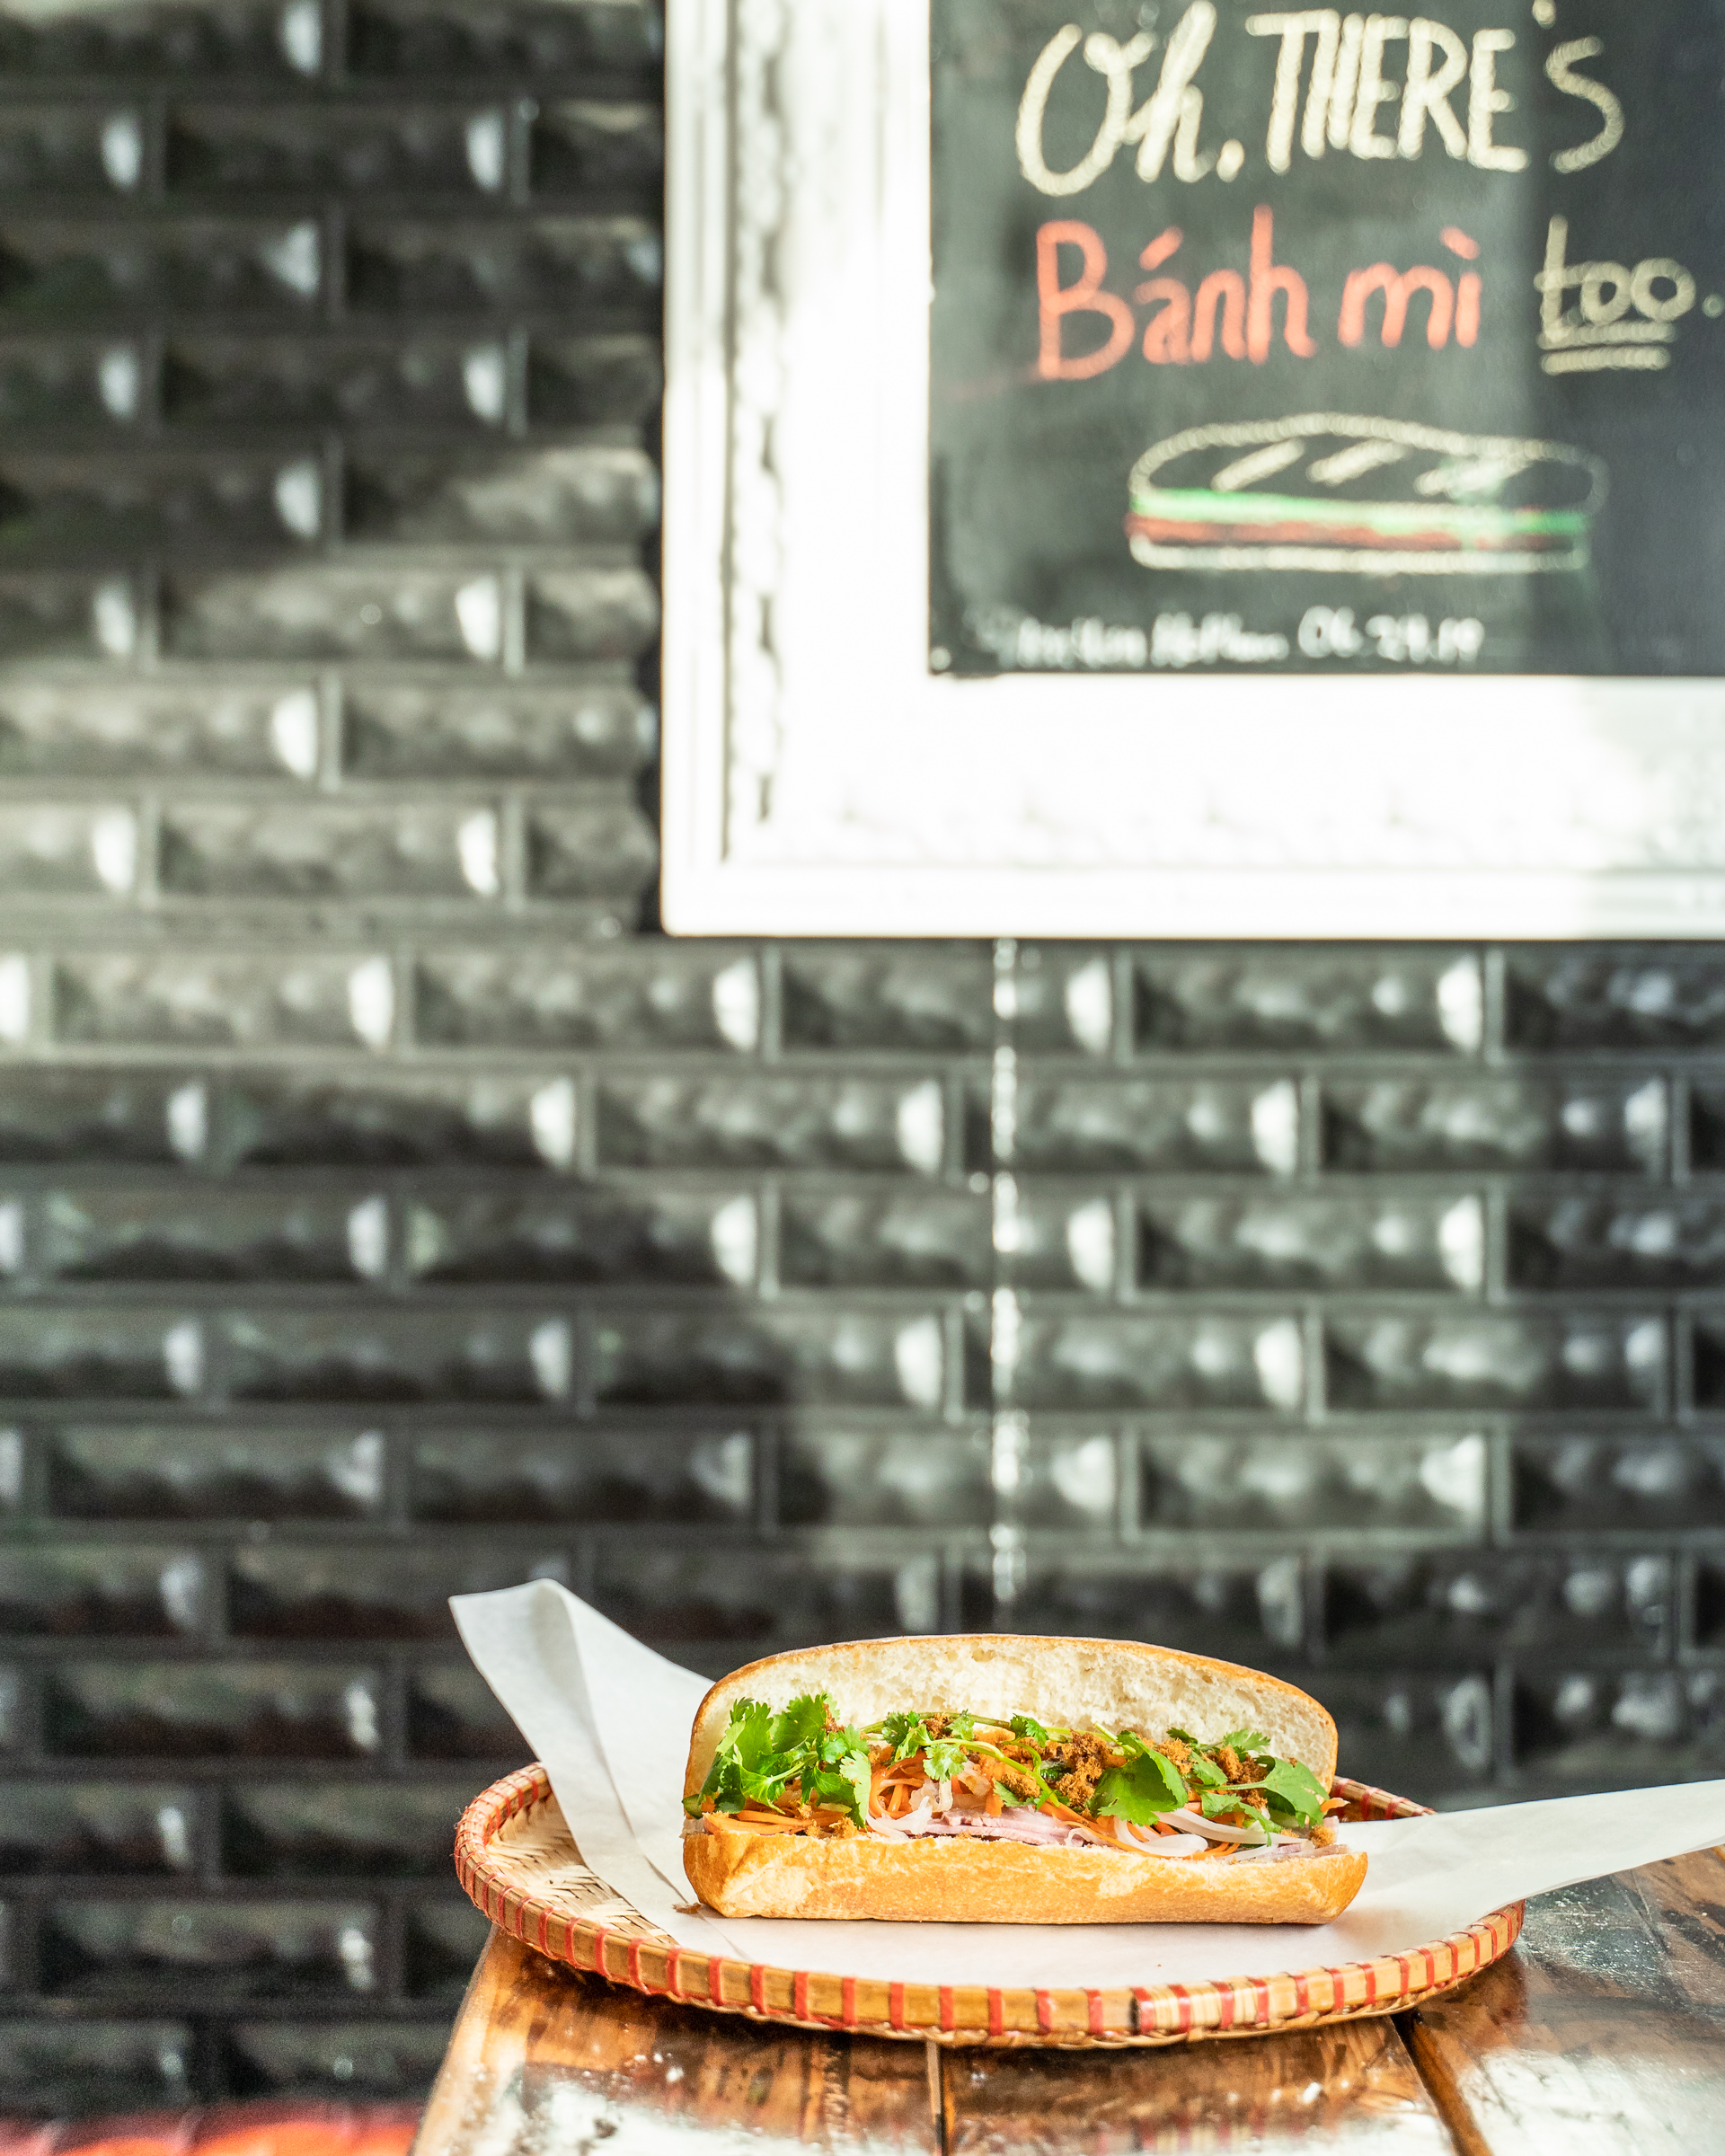 bahn mi food photography jeremy pawlowski canyon creative company for hire.jpg